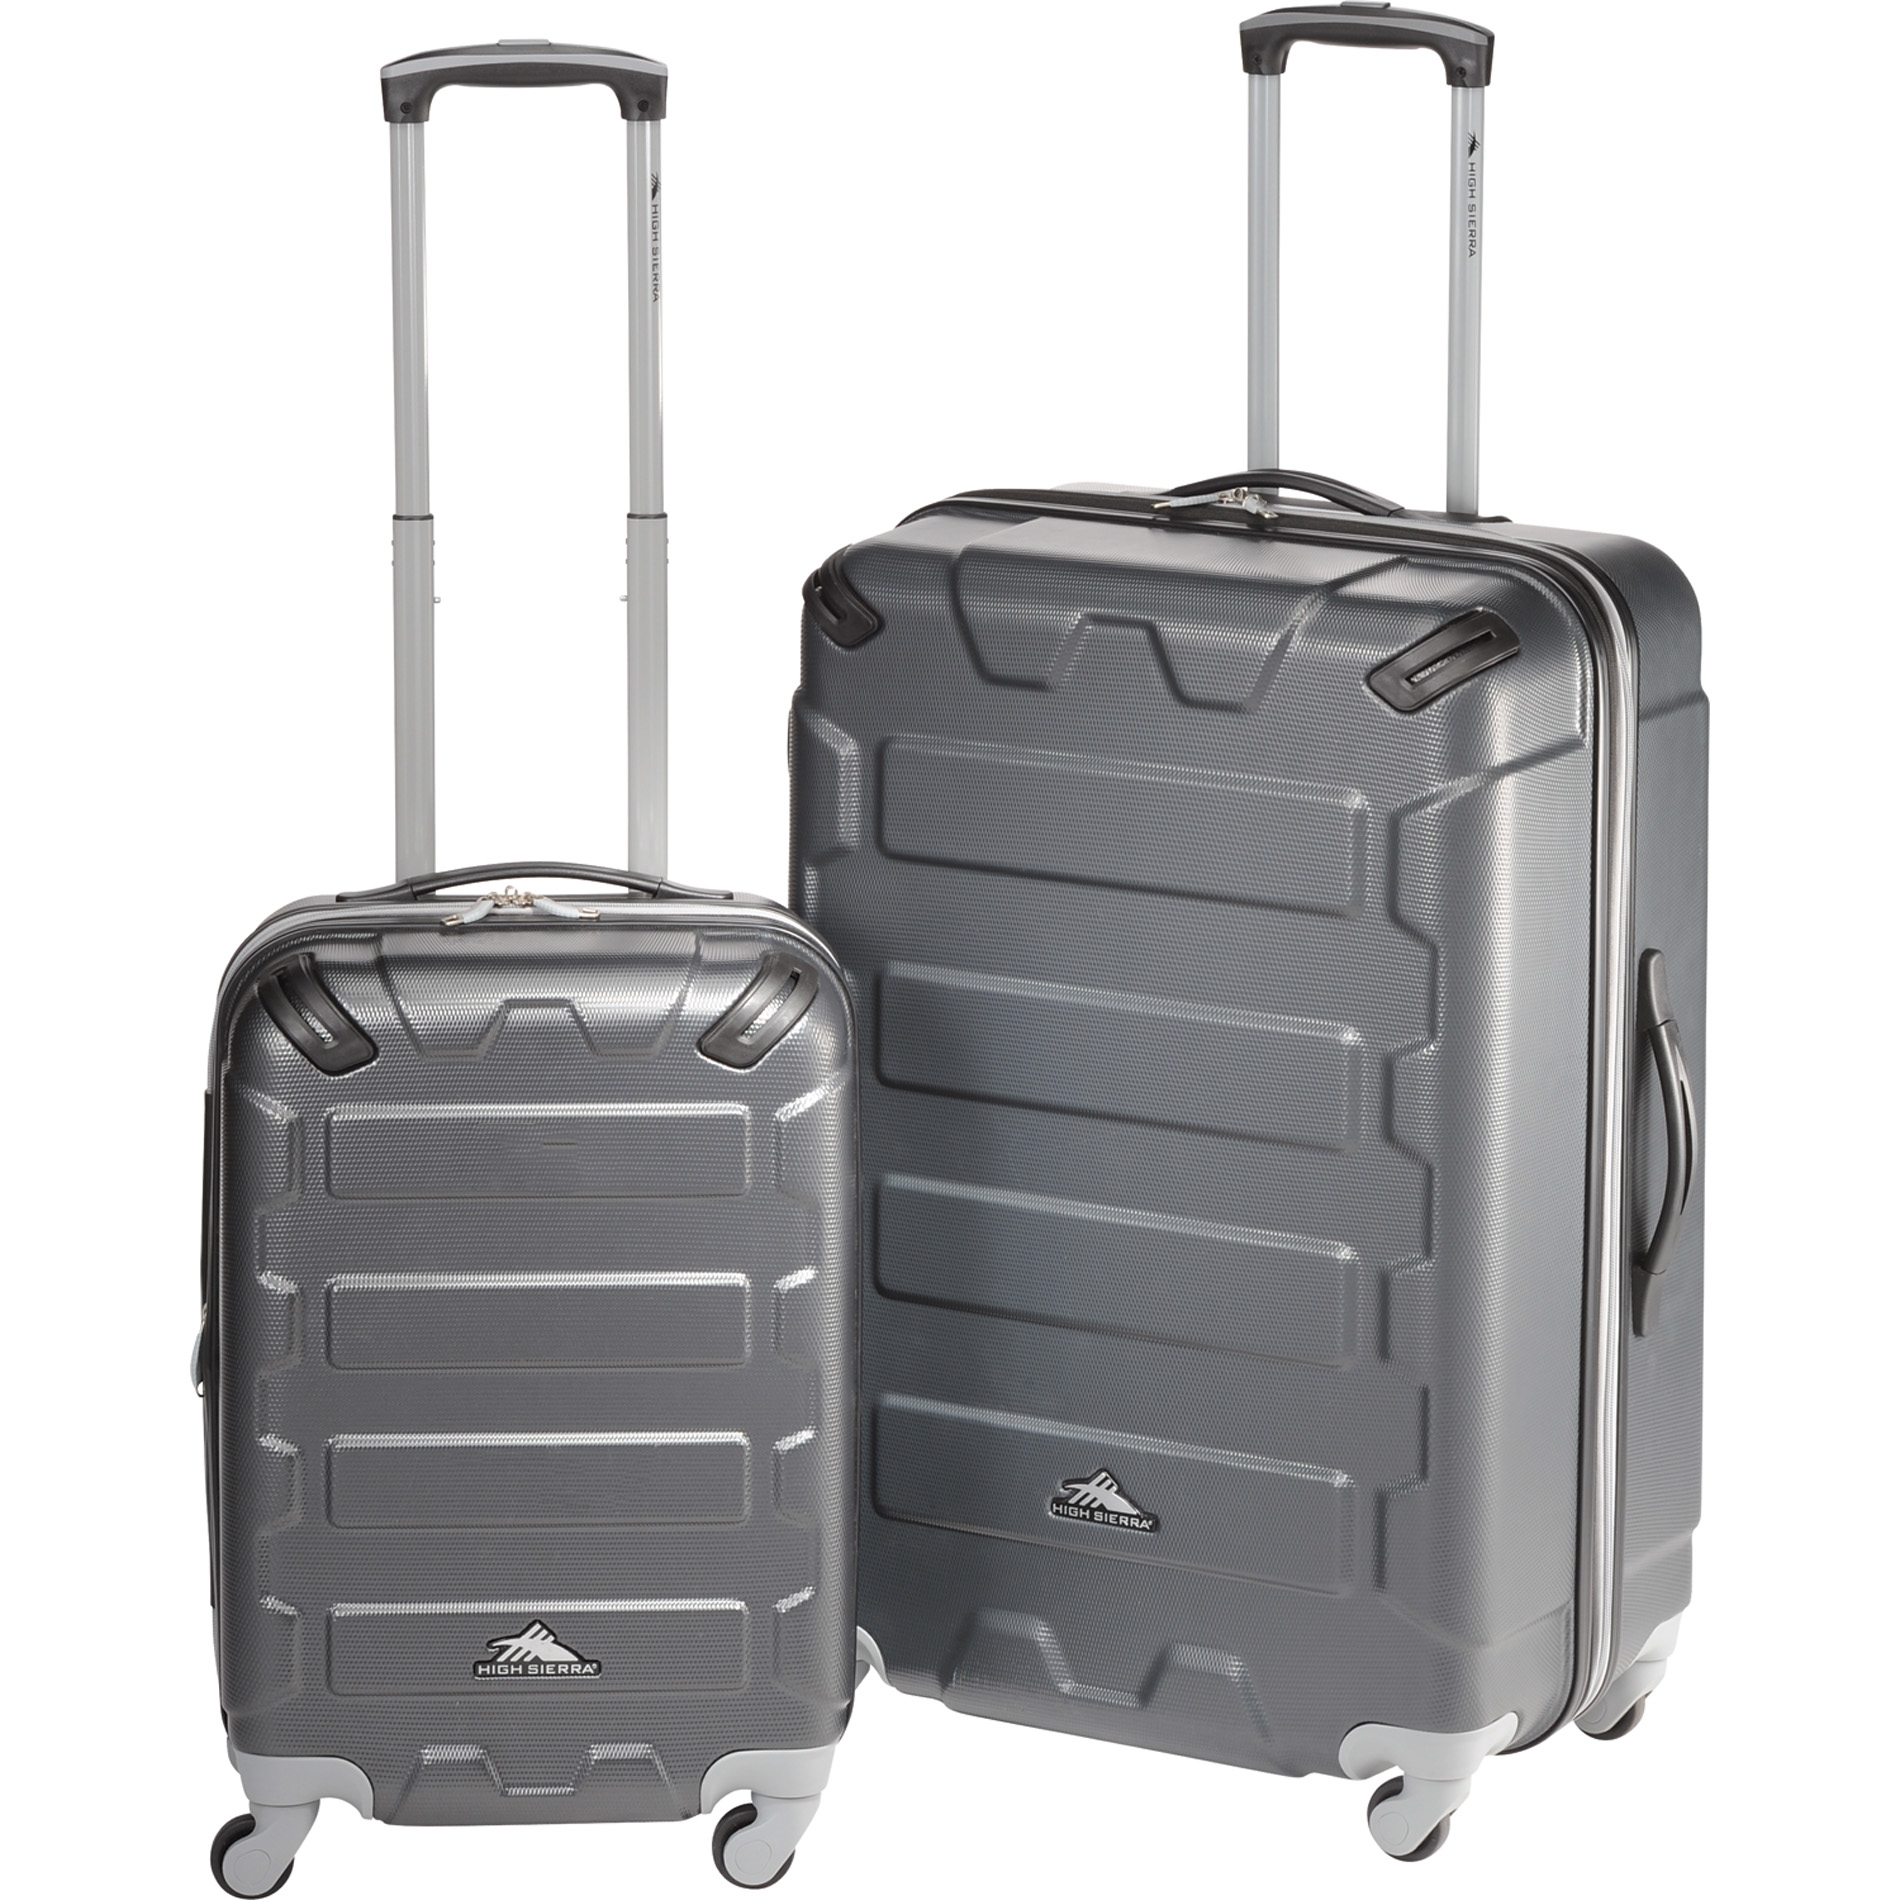 High Sierra 8053-02 - 2pc Hardside Luggage Set